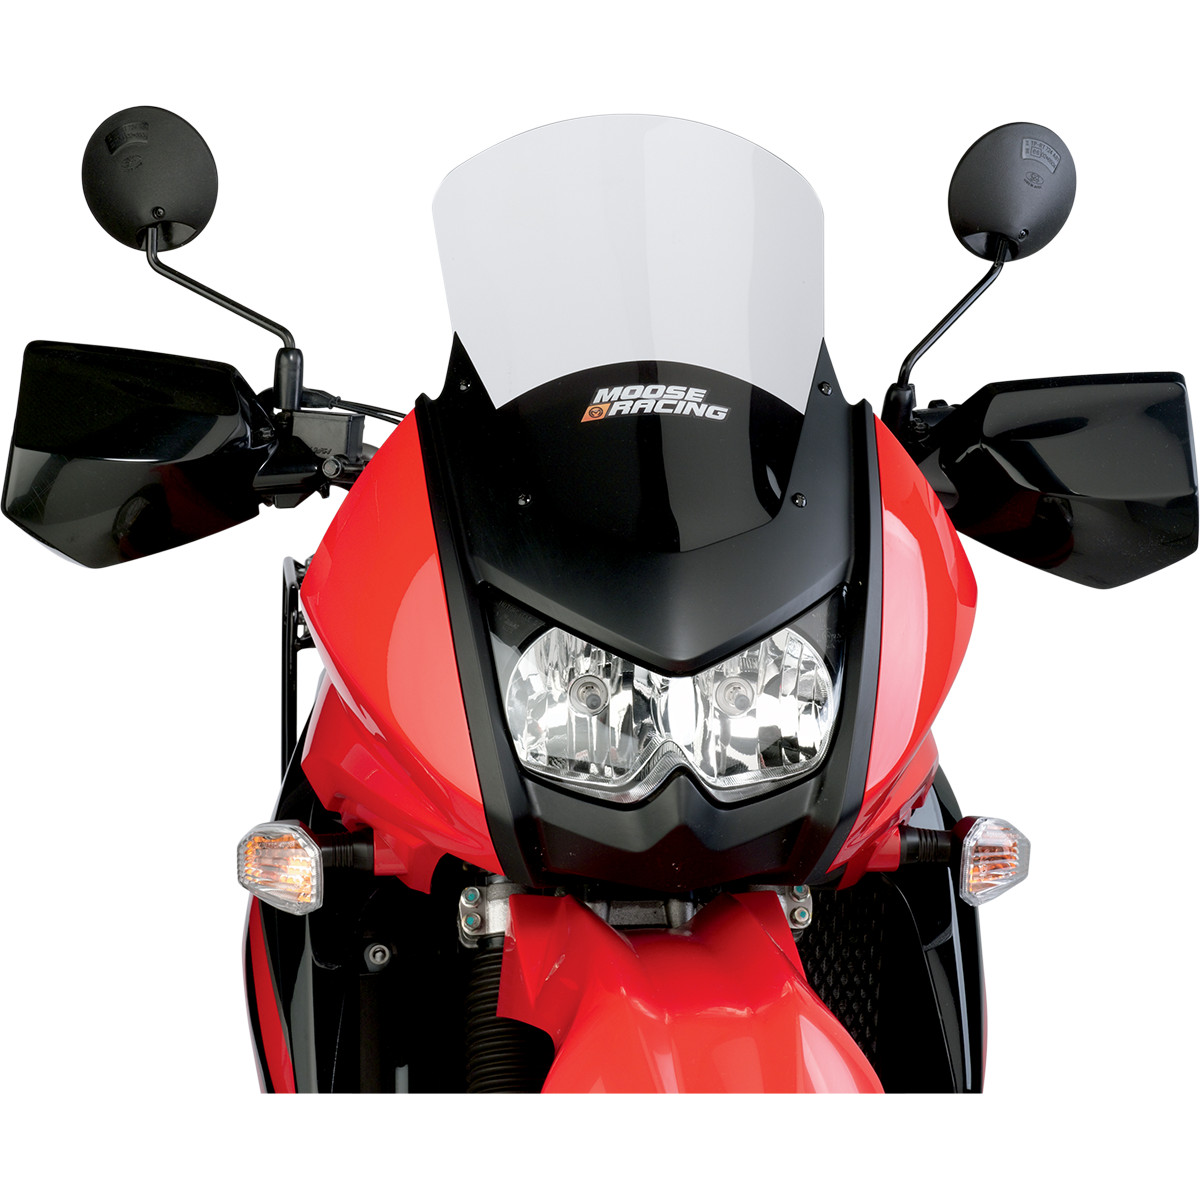 KLR 650 ADVENTURE WINDSHIELD, 4'' OVER, 08-UP